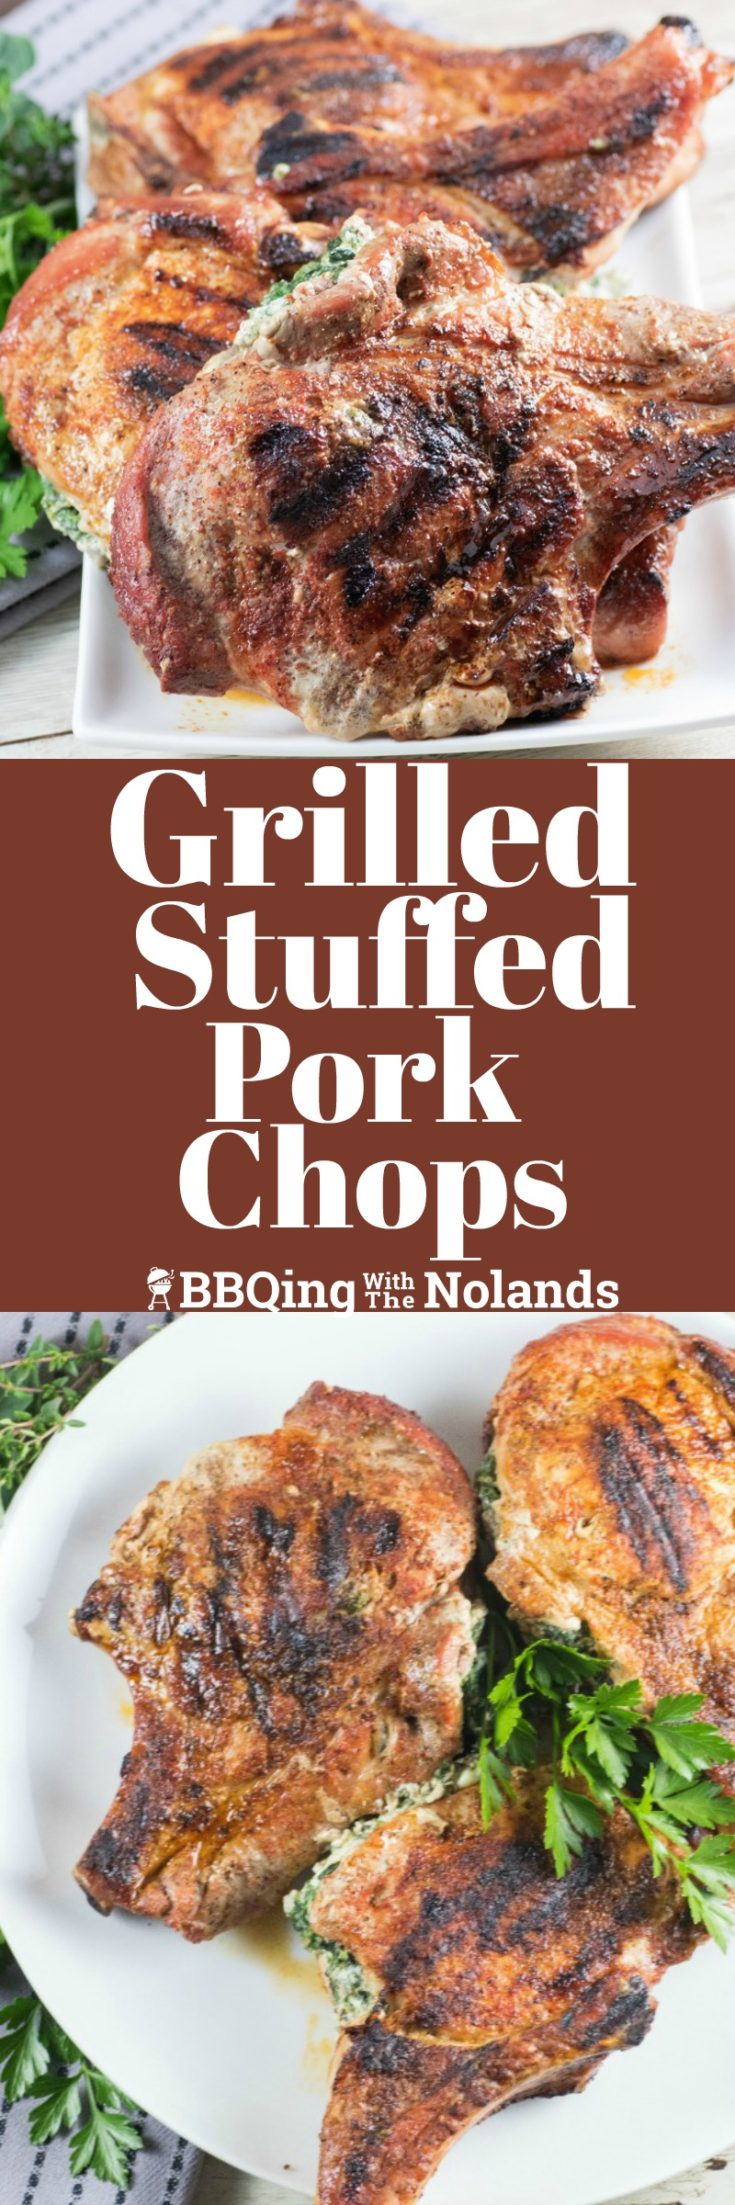 Grilled Stuffed Pork Chops cooked on a griddle or grill are so easy to make you're going to wonder why you don't make them all the time!